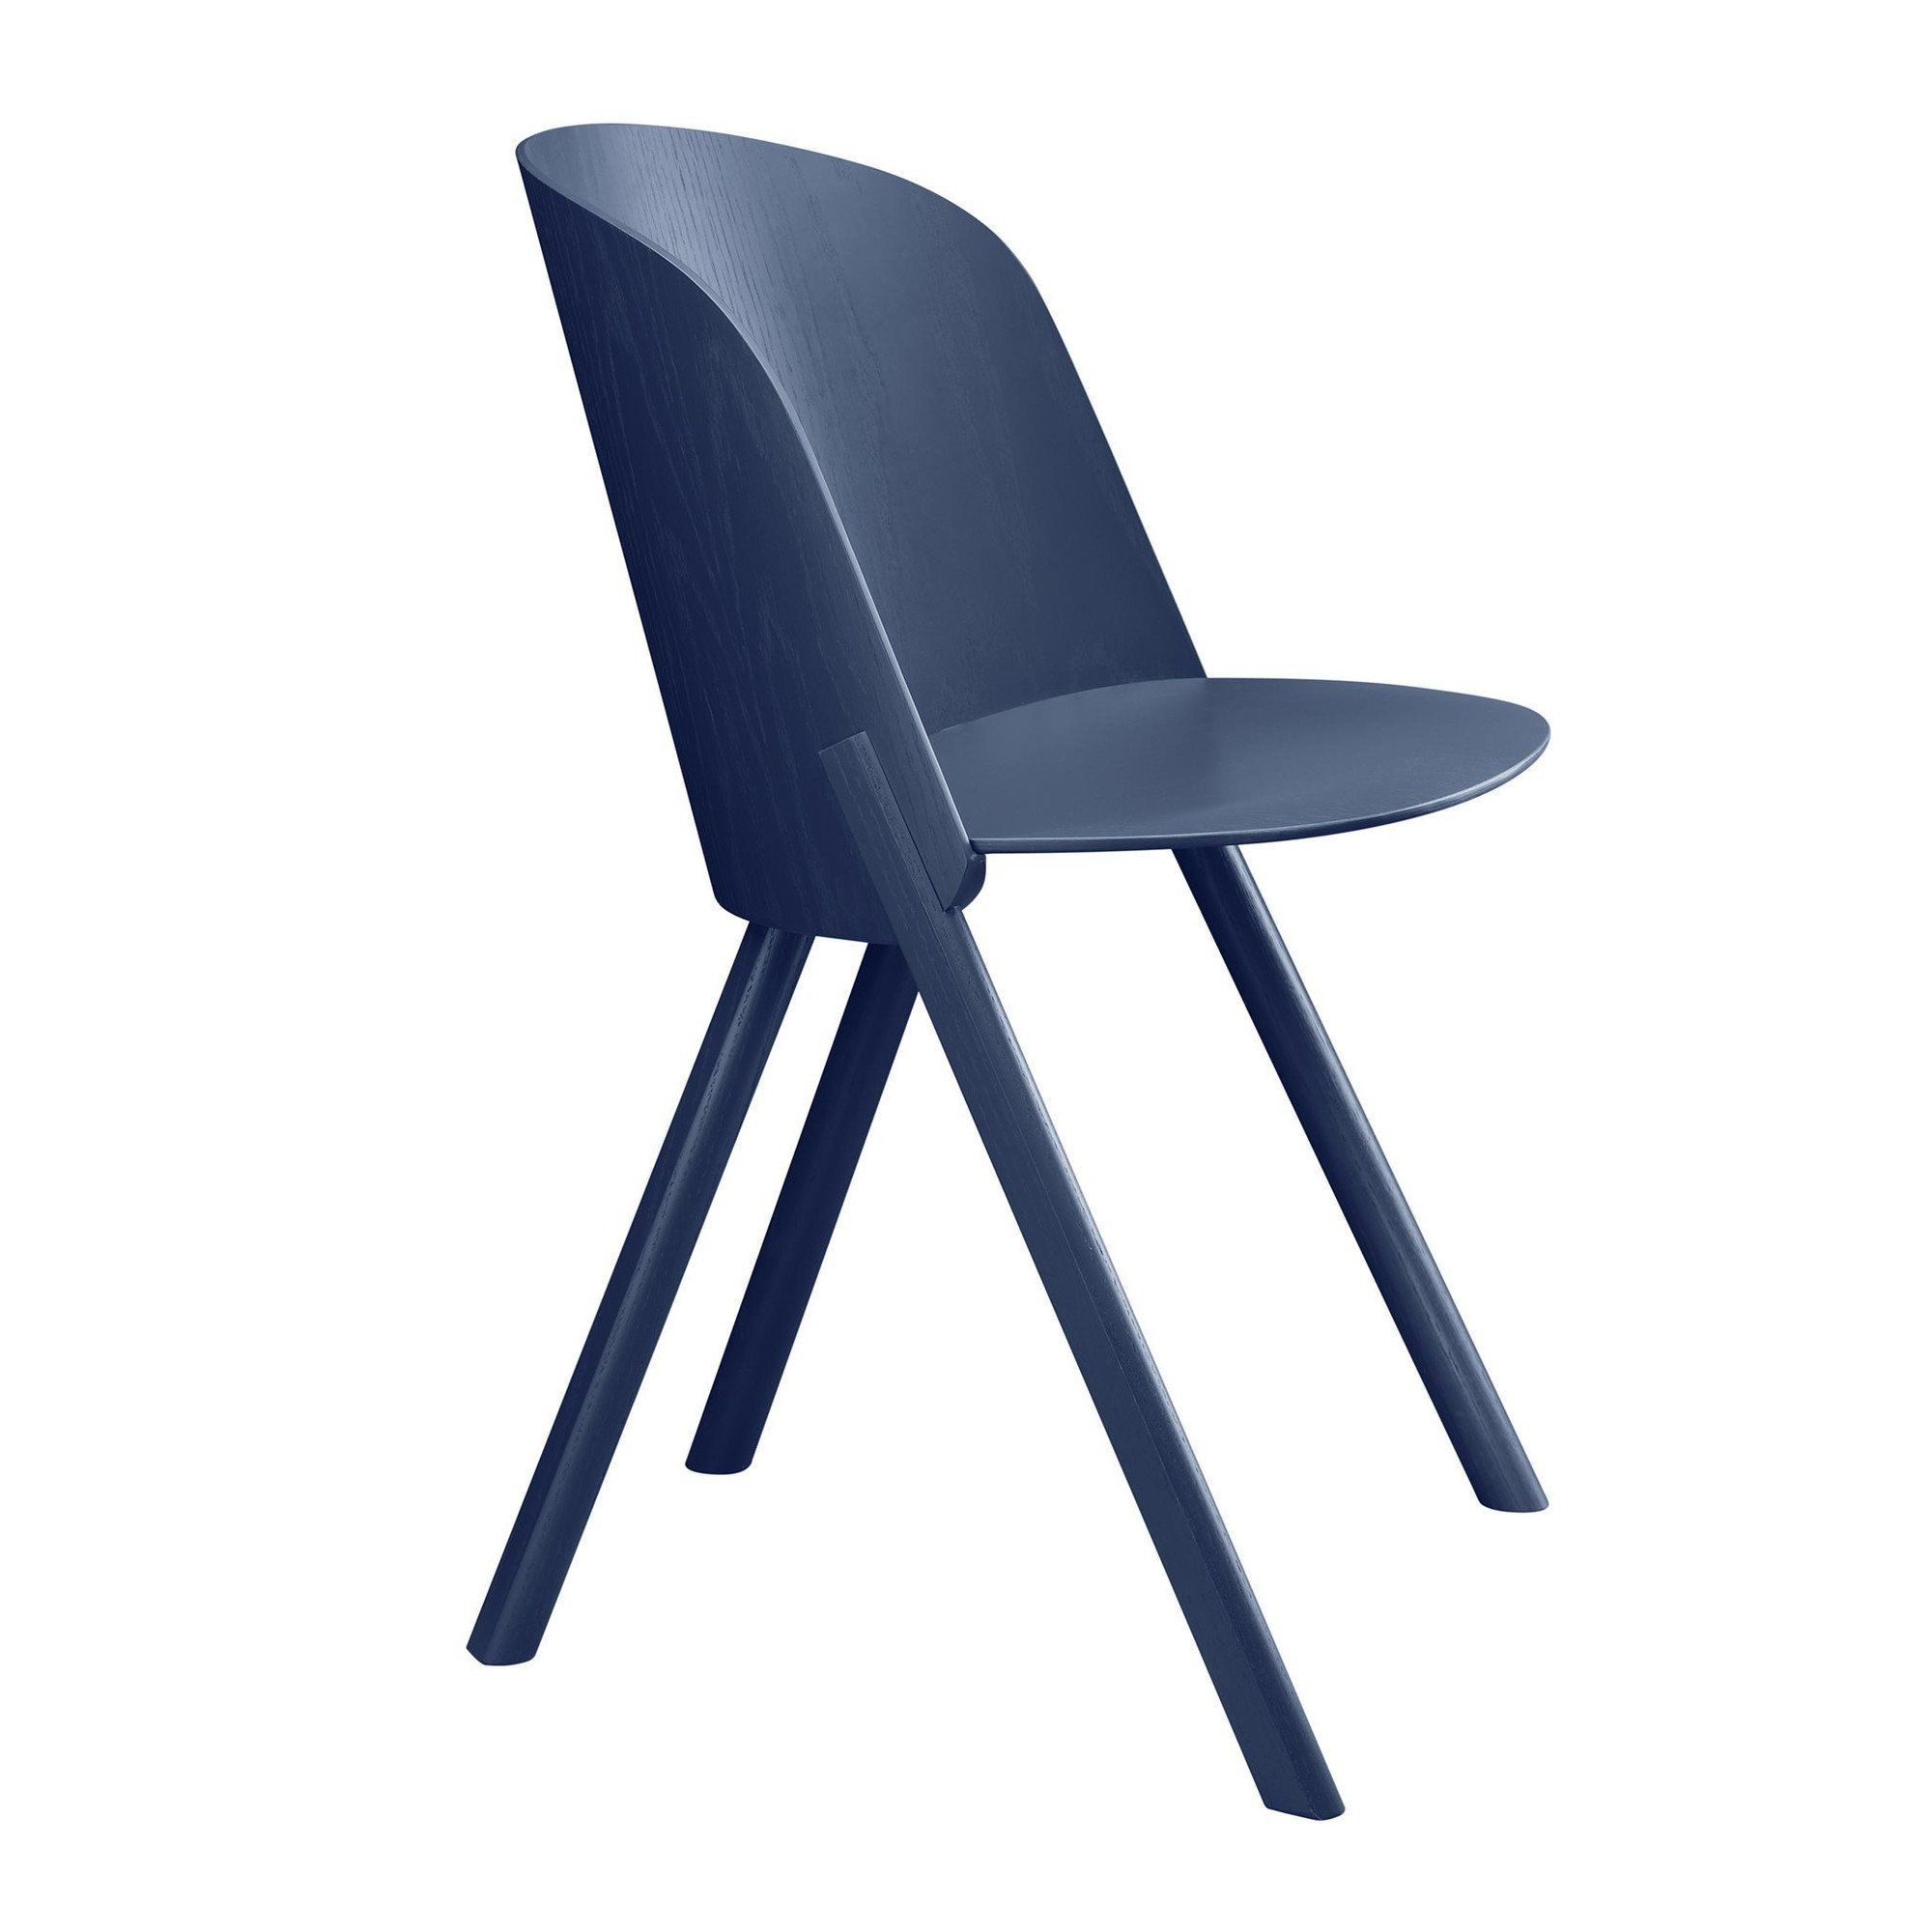 ... E15   E15 CH05 This Chair   Navy/lacquered ...